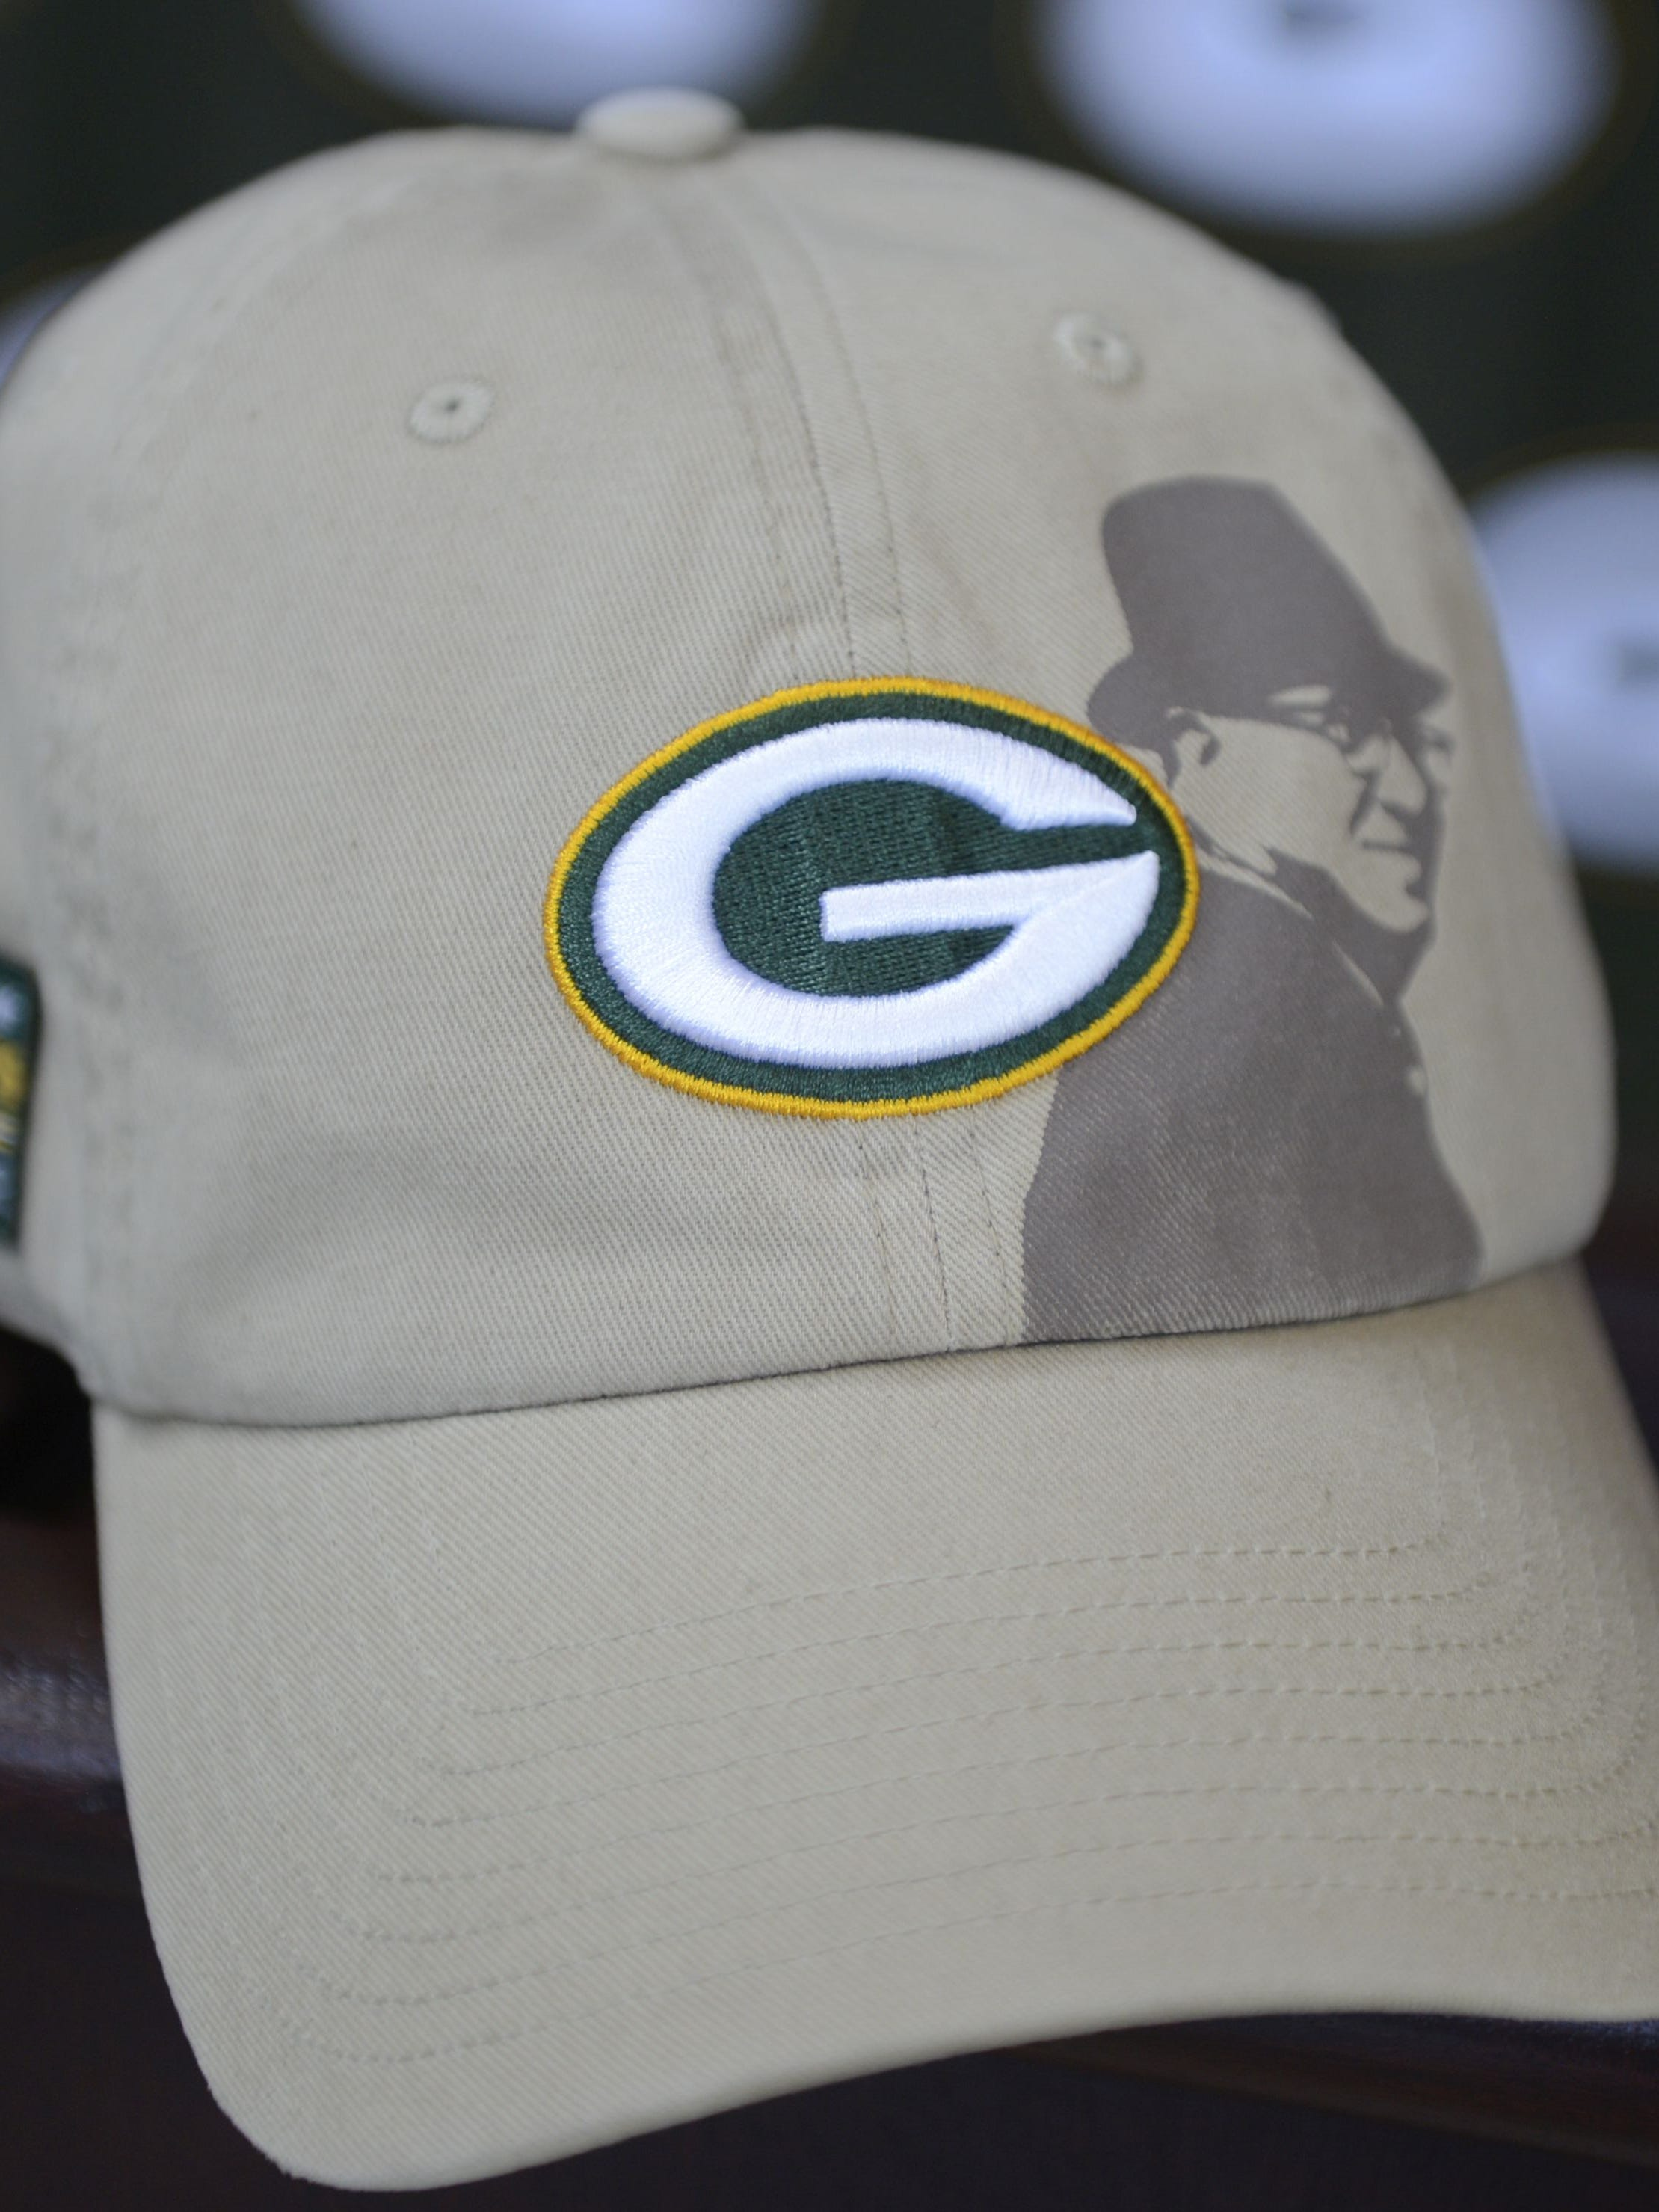 Packers Tackle Cancer Awareness